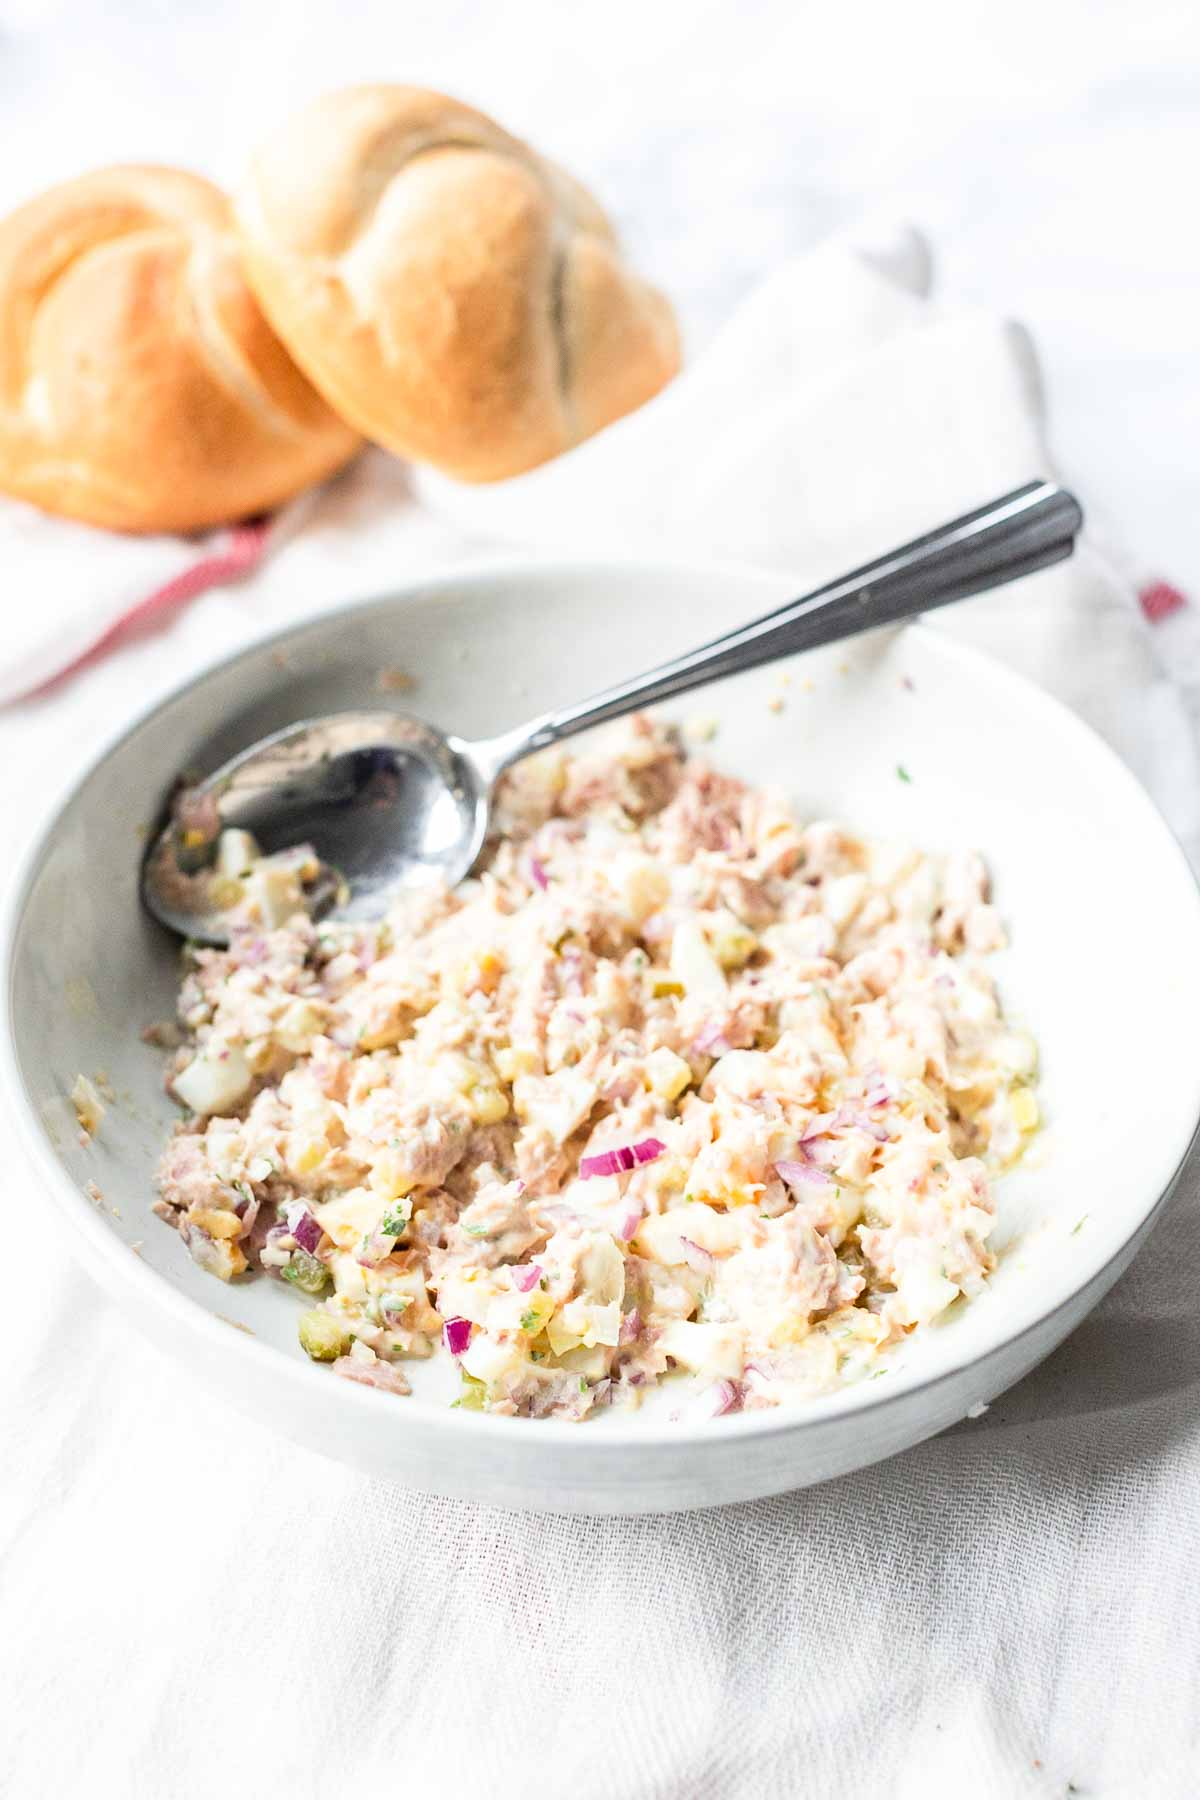 The best tuna salad is a made with pickle and egg. Great salad to serve with toast, crackers or bread. Visit fastfoodbistro.com for the full recipe #fastfoodbistro #tunasalad #tunasaladrecipe #tuna #salad